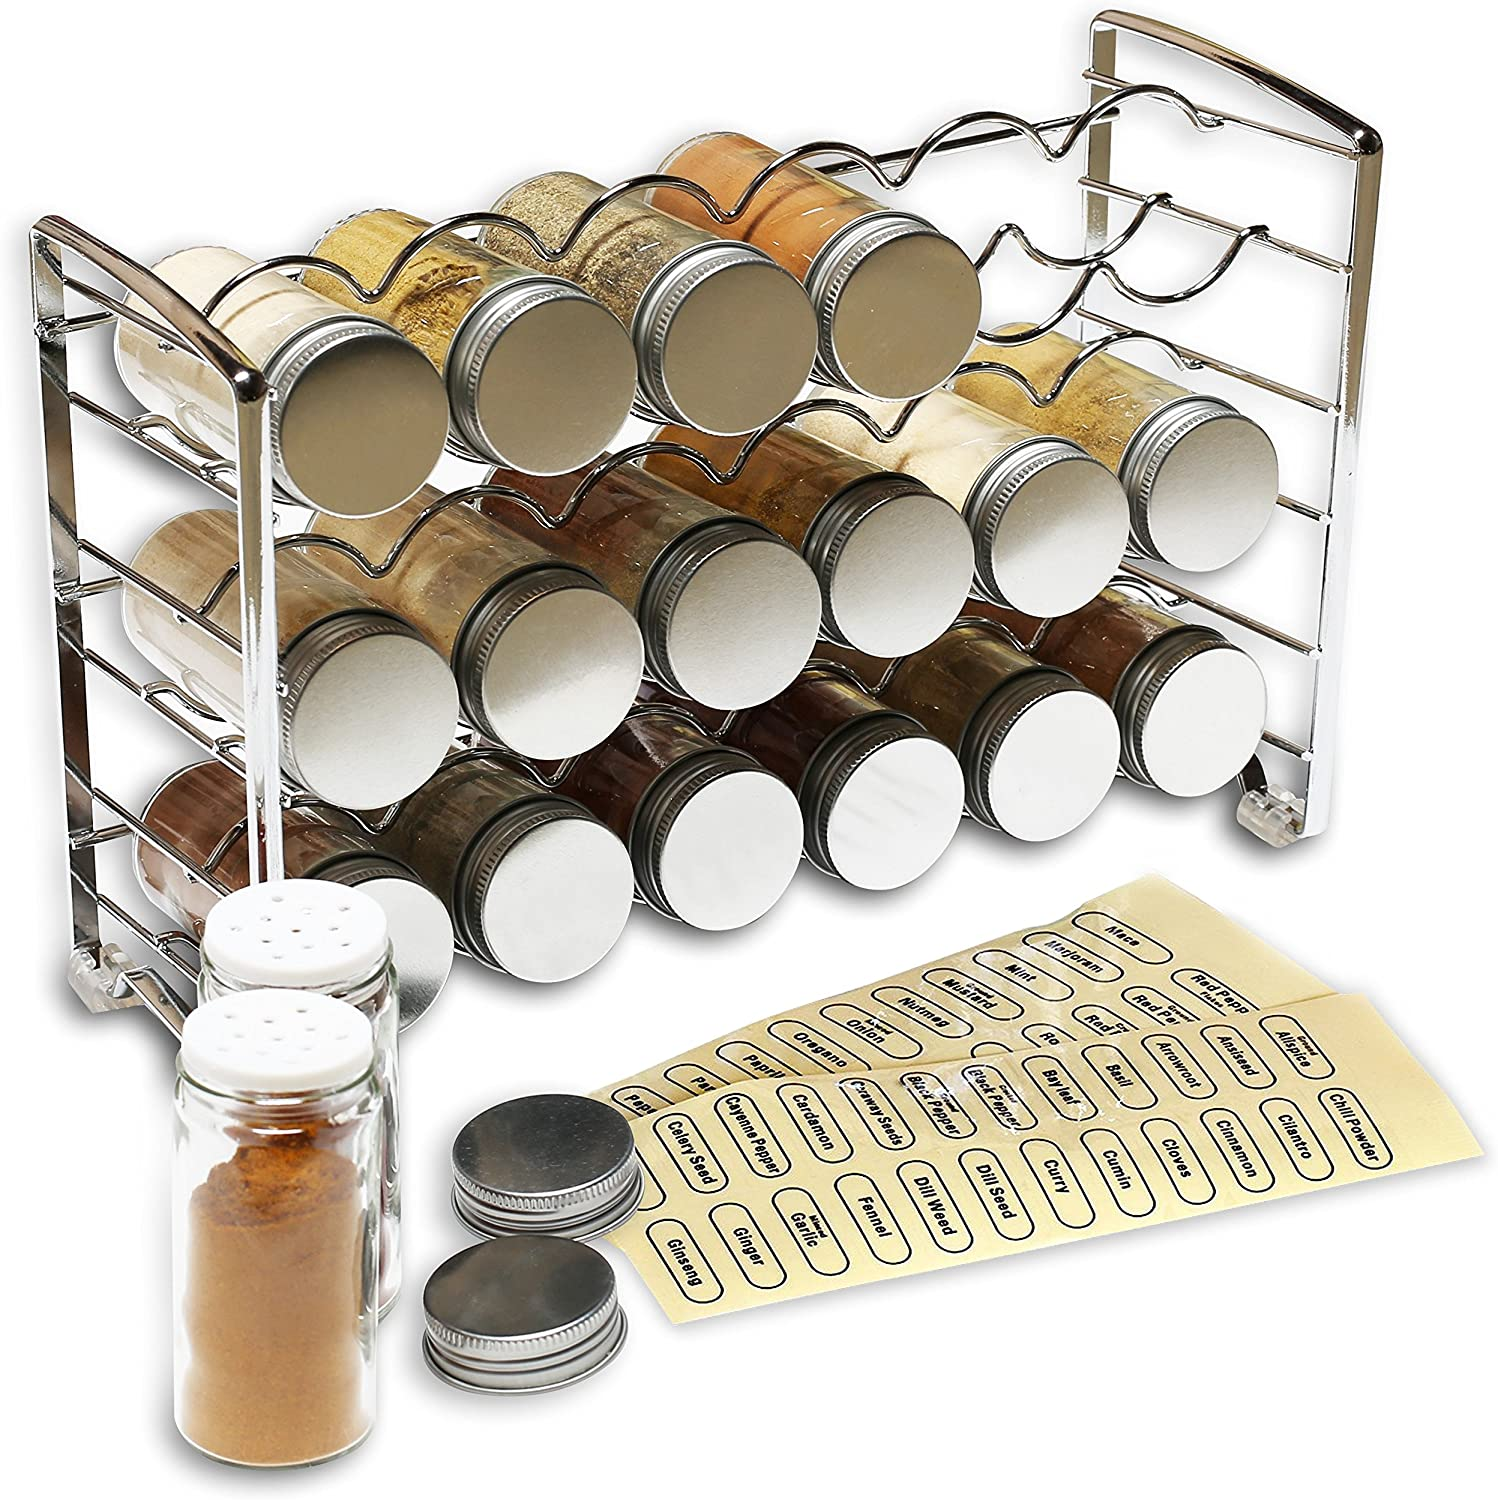 DecoBros Spice Rack Stand holder with 18 bottles and 48 Labels, Chrome: Kitchen & Dining